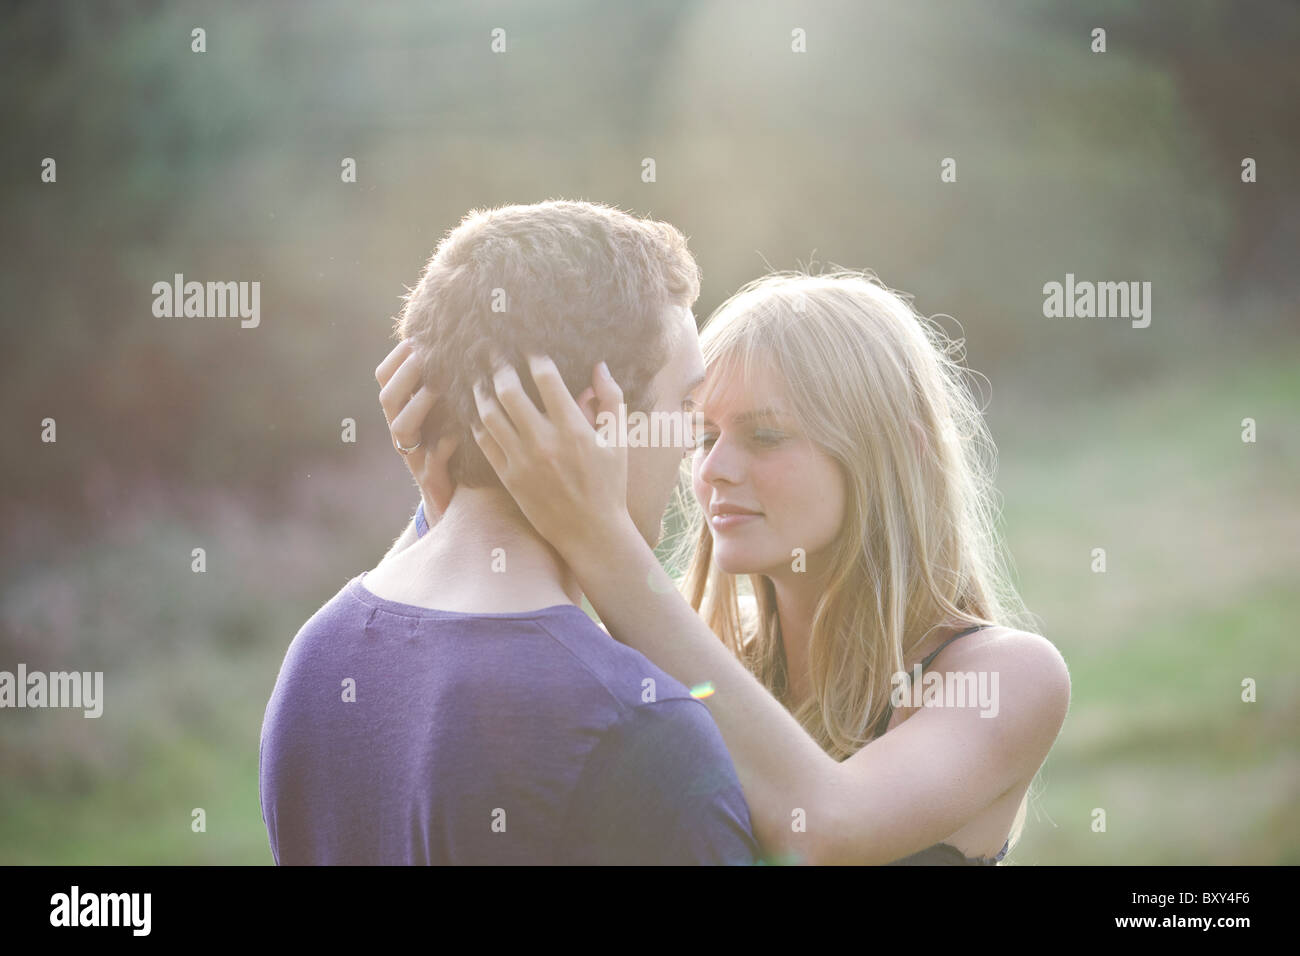 A romantic young couple embracing in the evening sun - Stock Image